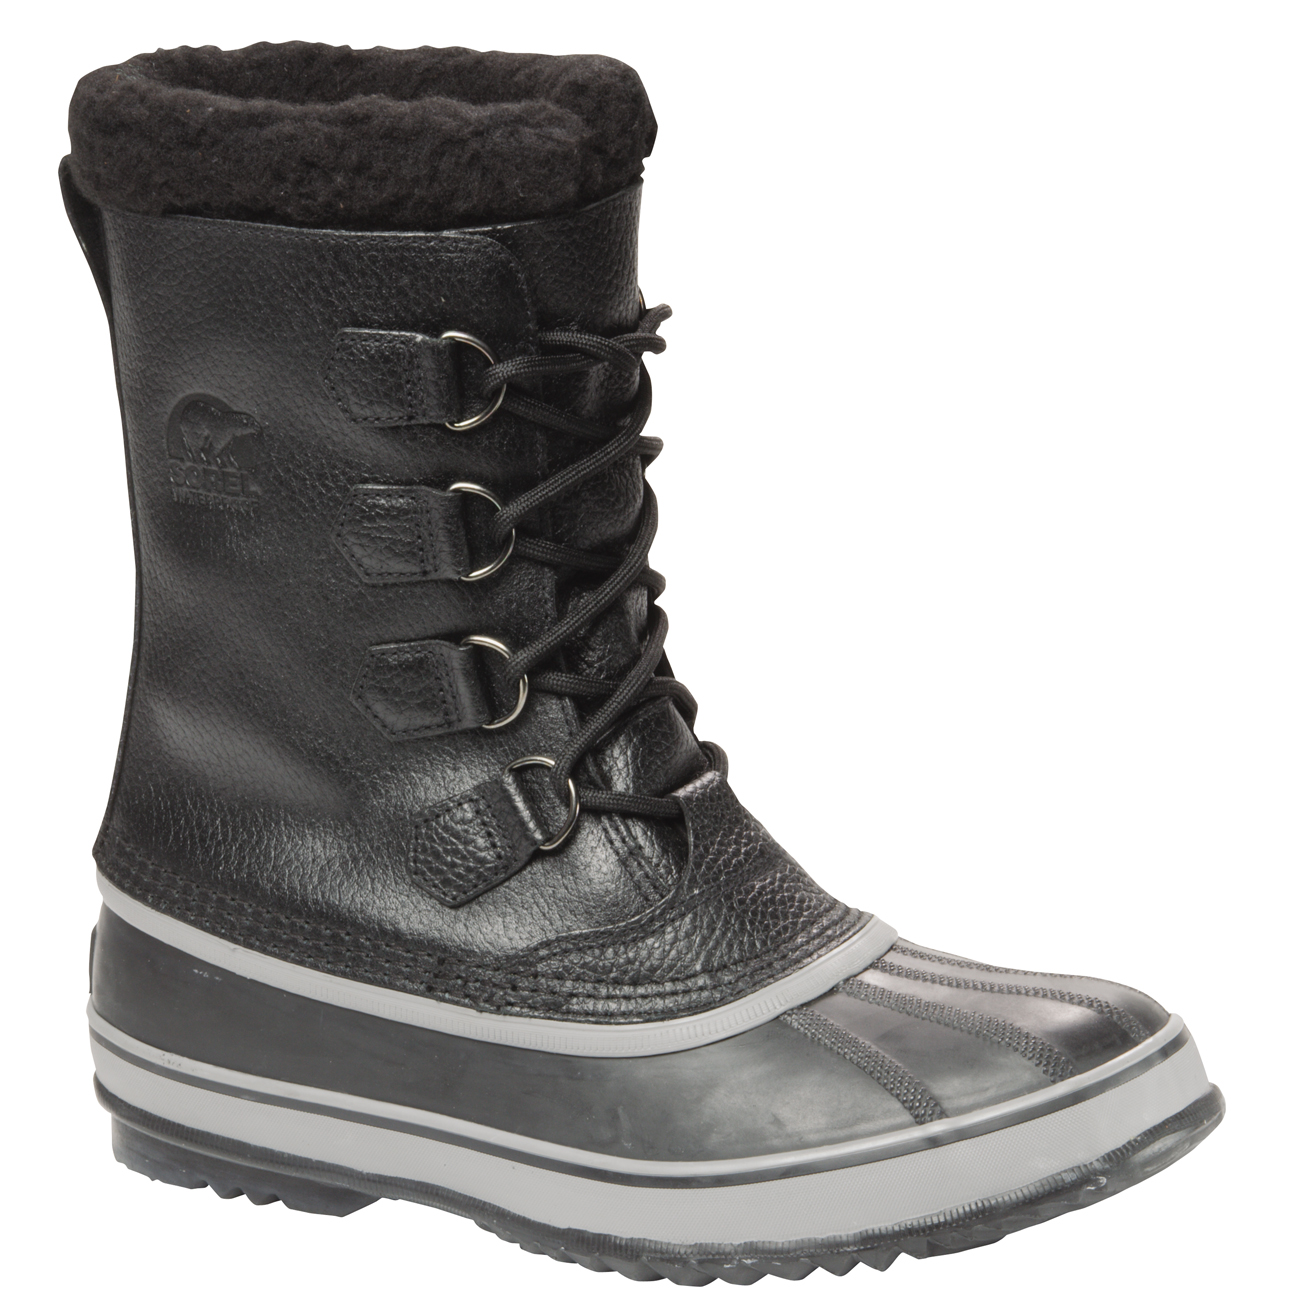 Mens Sorel 1964 Pac Winter Snow Waterproof Hiking Rain Walking ...